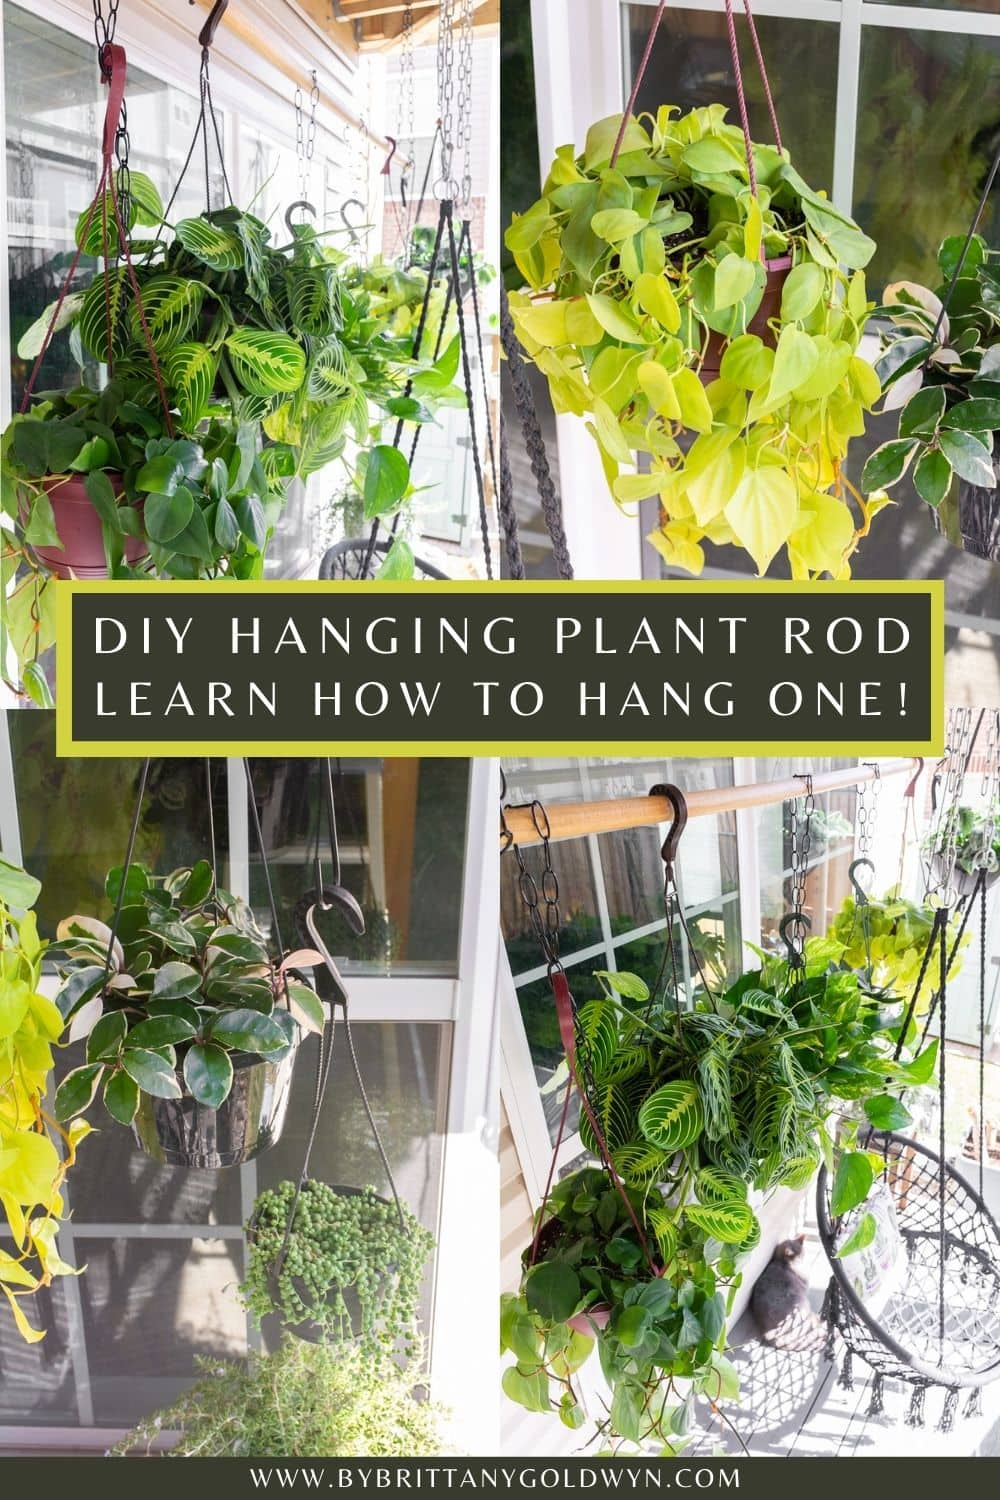 pinnable graphic with photos of hanging plants and text about how to set up a DIY hanging plant rod